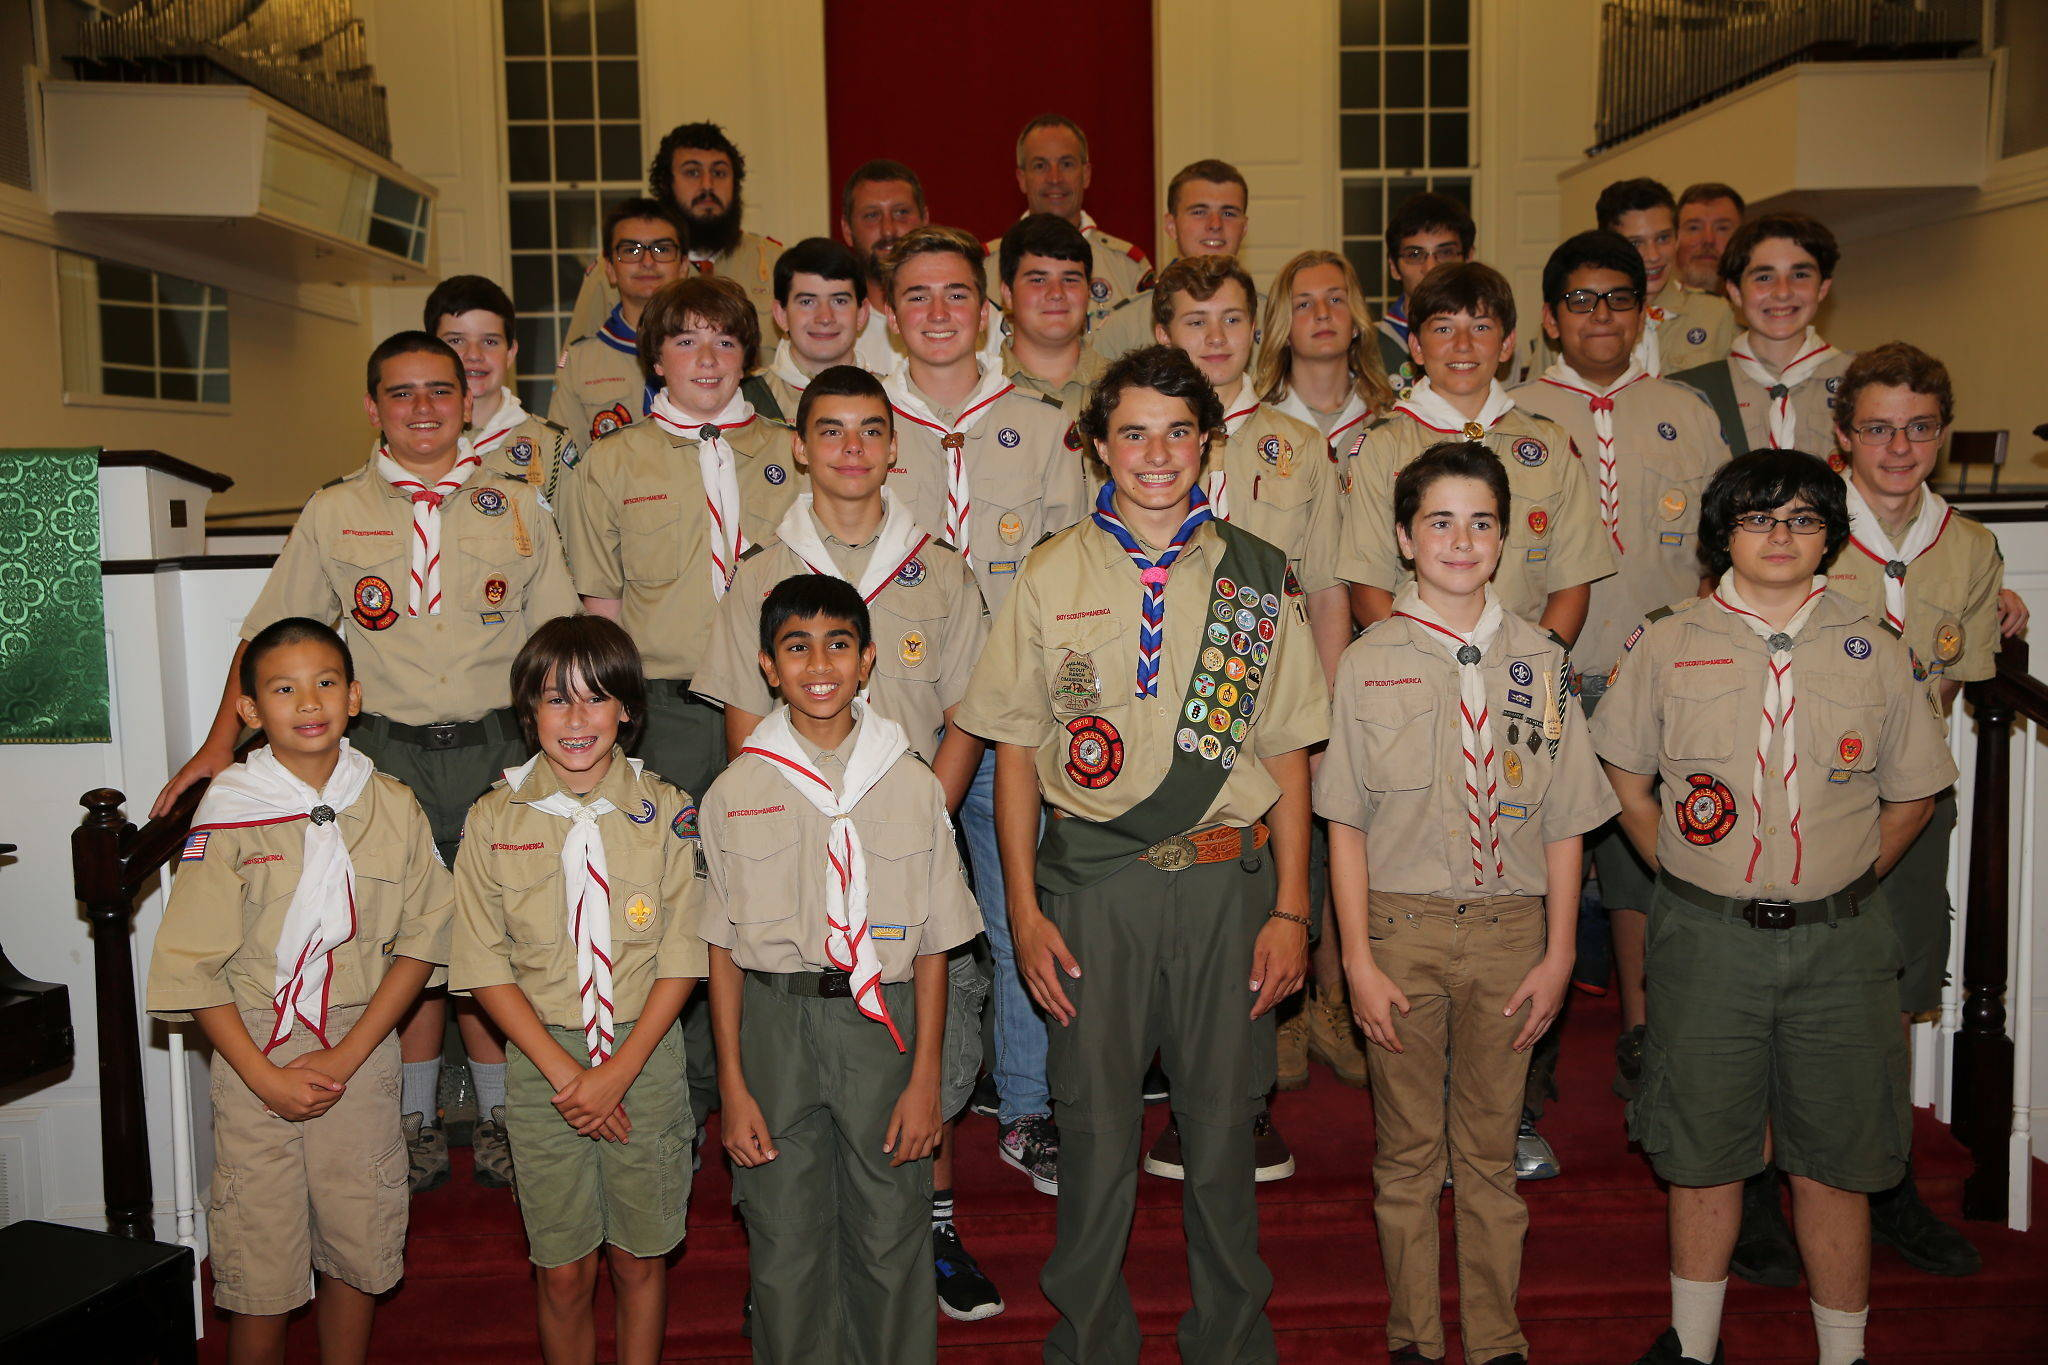 c12eab6cf744498b9369_Ian_Gordon_Eagle_Troop_104_group_shot.jpg